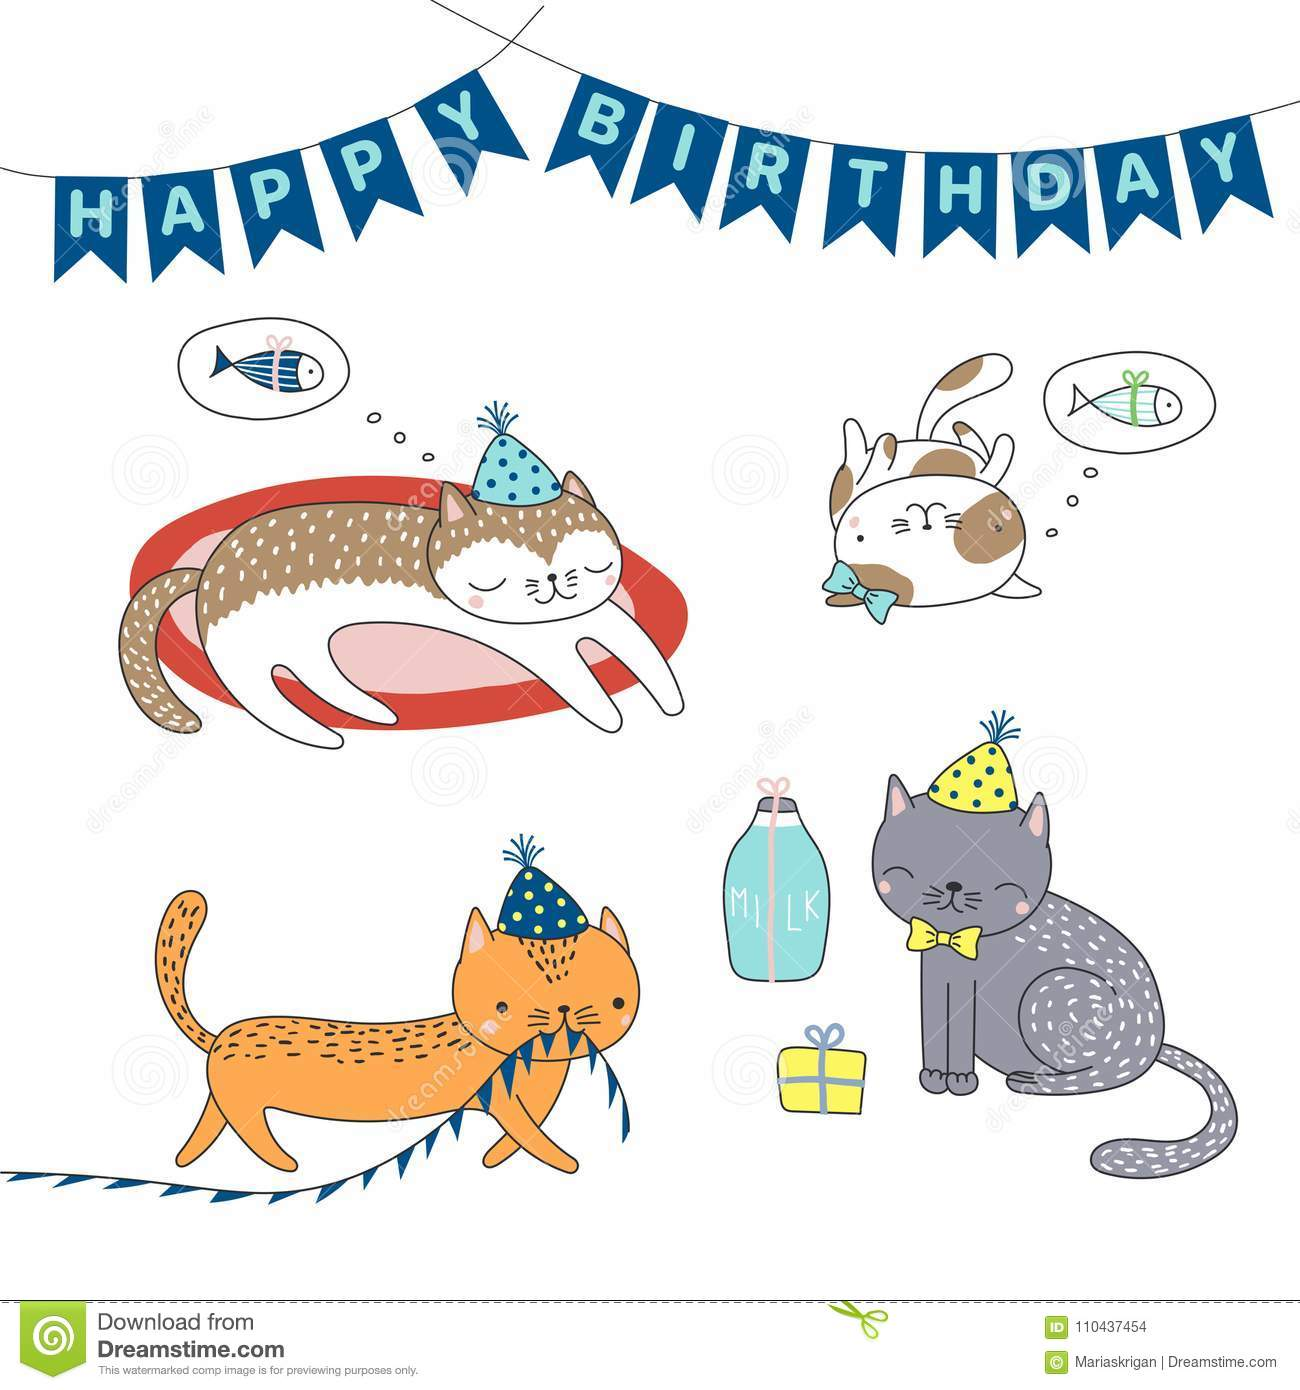 Cartoon Cats In Party Hats With Presents Typography Isolated Objects On White Background Vector Illustration Design Concept For Children Birthday